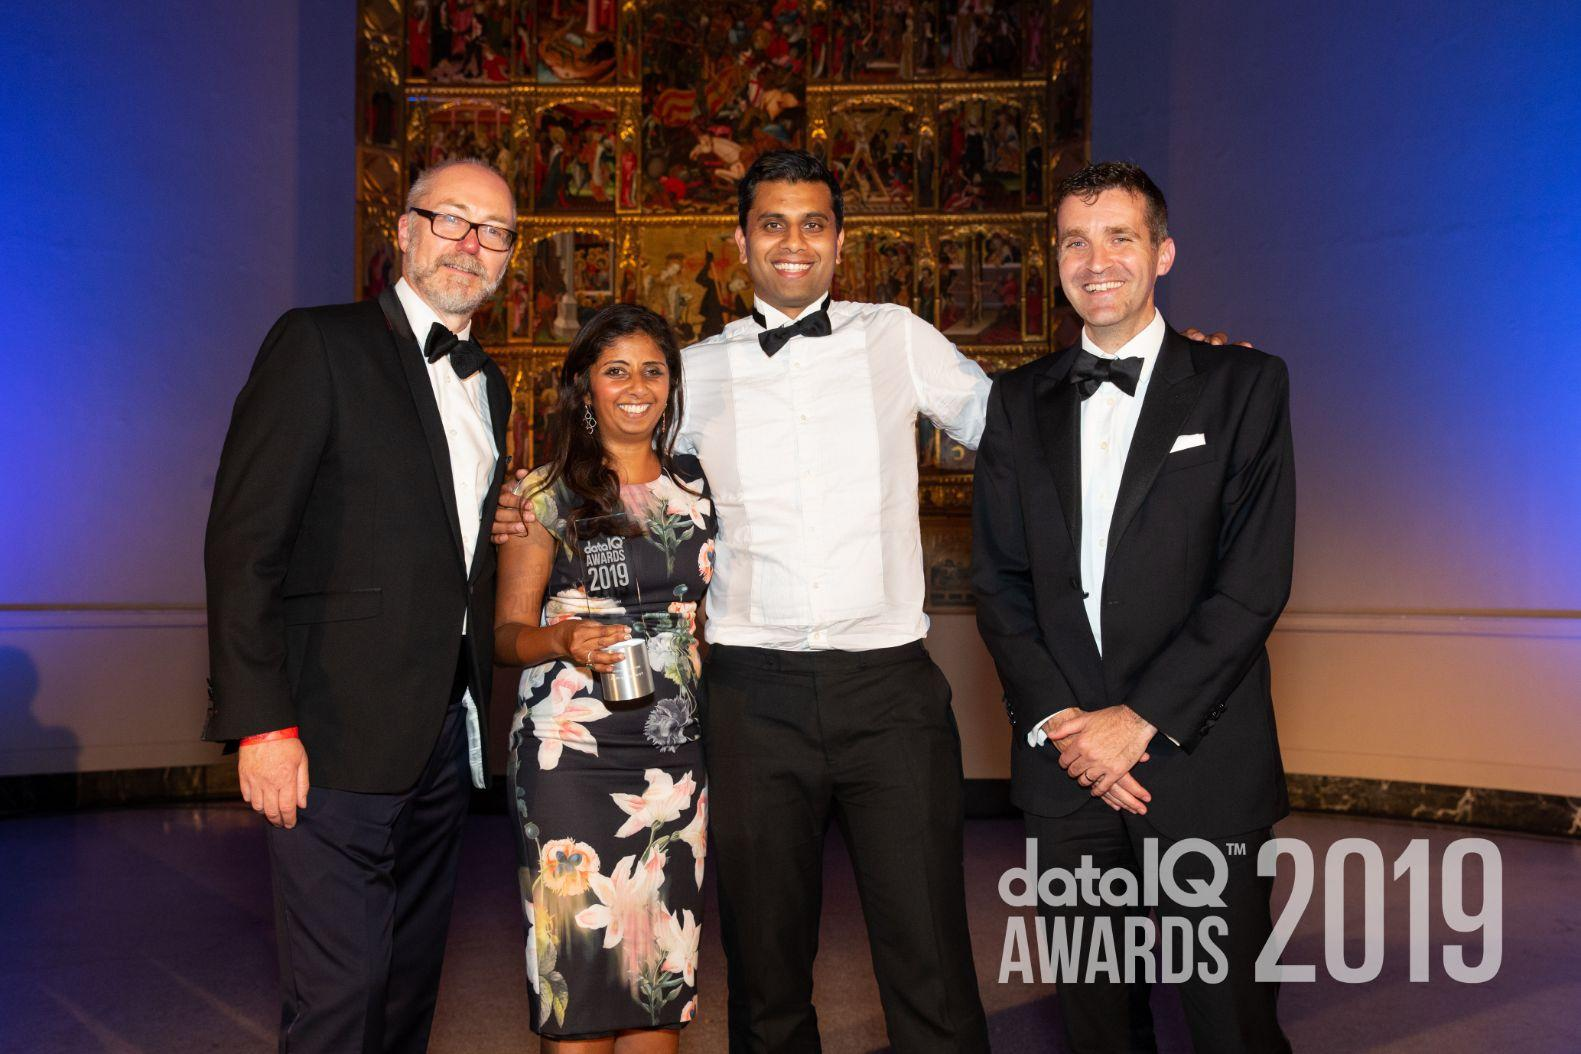 Awards 2019 Image 88